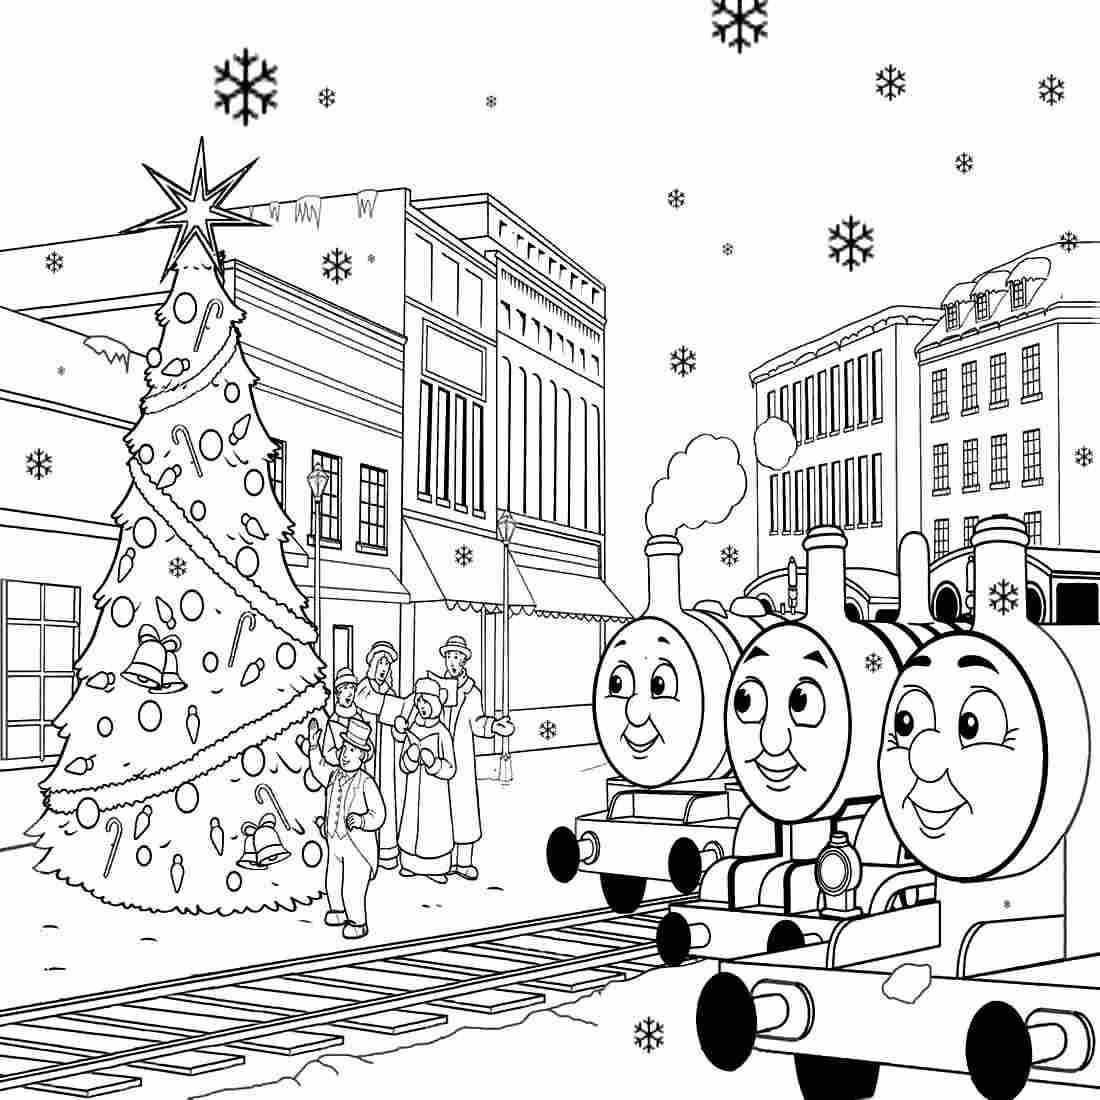 Thomas the train coloring pages for toddlers - Thomas The Train Coloring Pages To Print Free For Toddlers